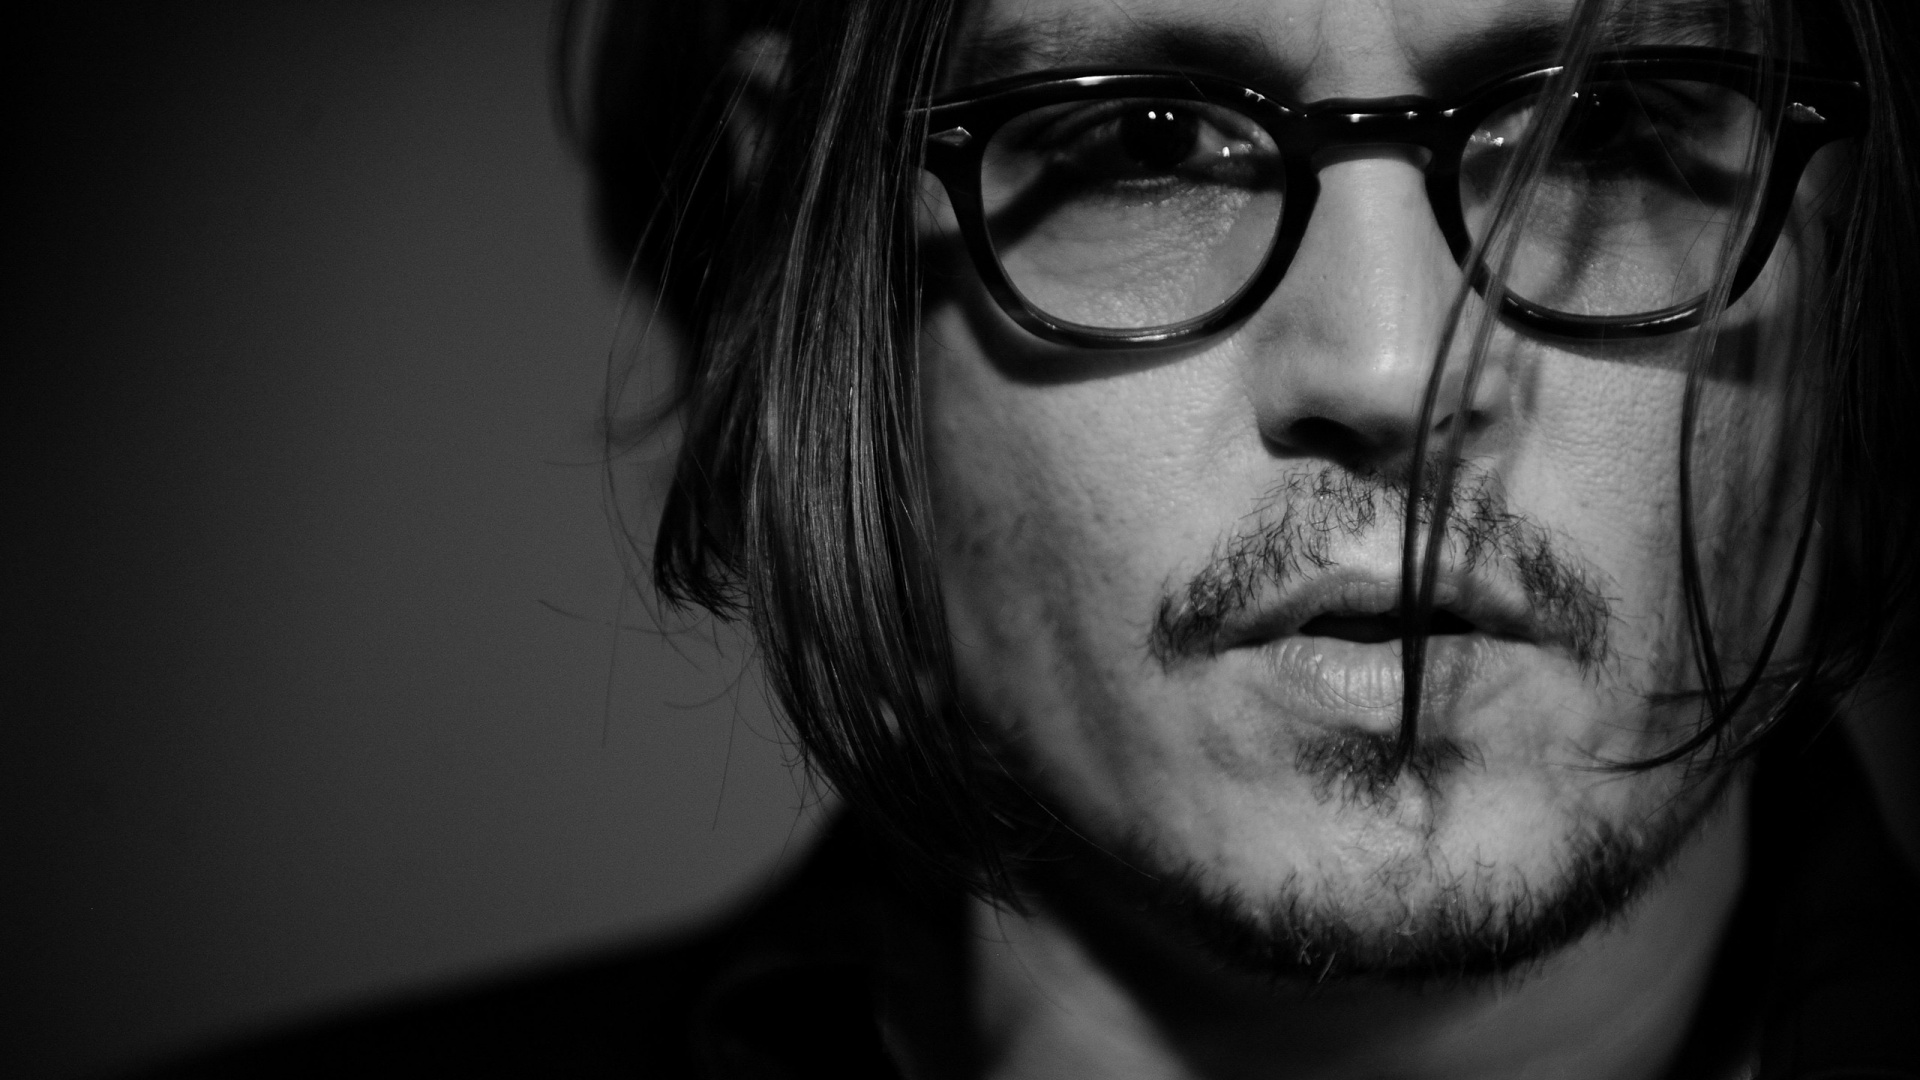 1920x1080 Johnny Depp Monochrome Close Up Desktop Pc And Mac Wallpaper